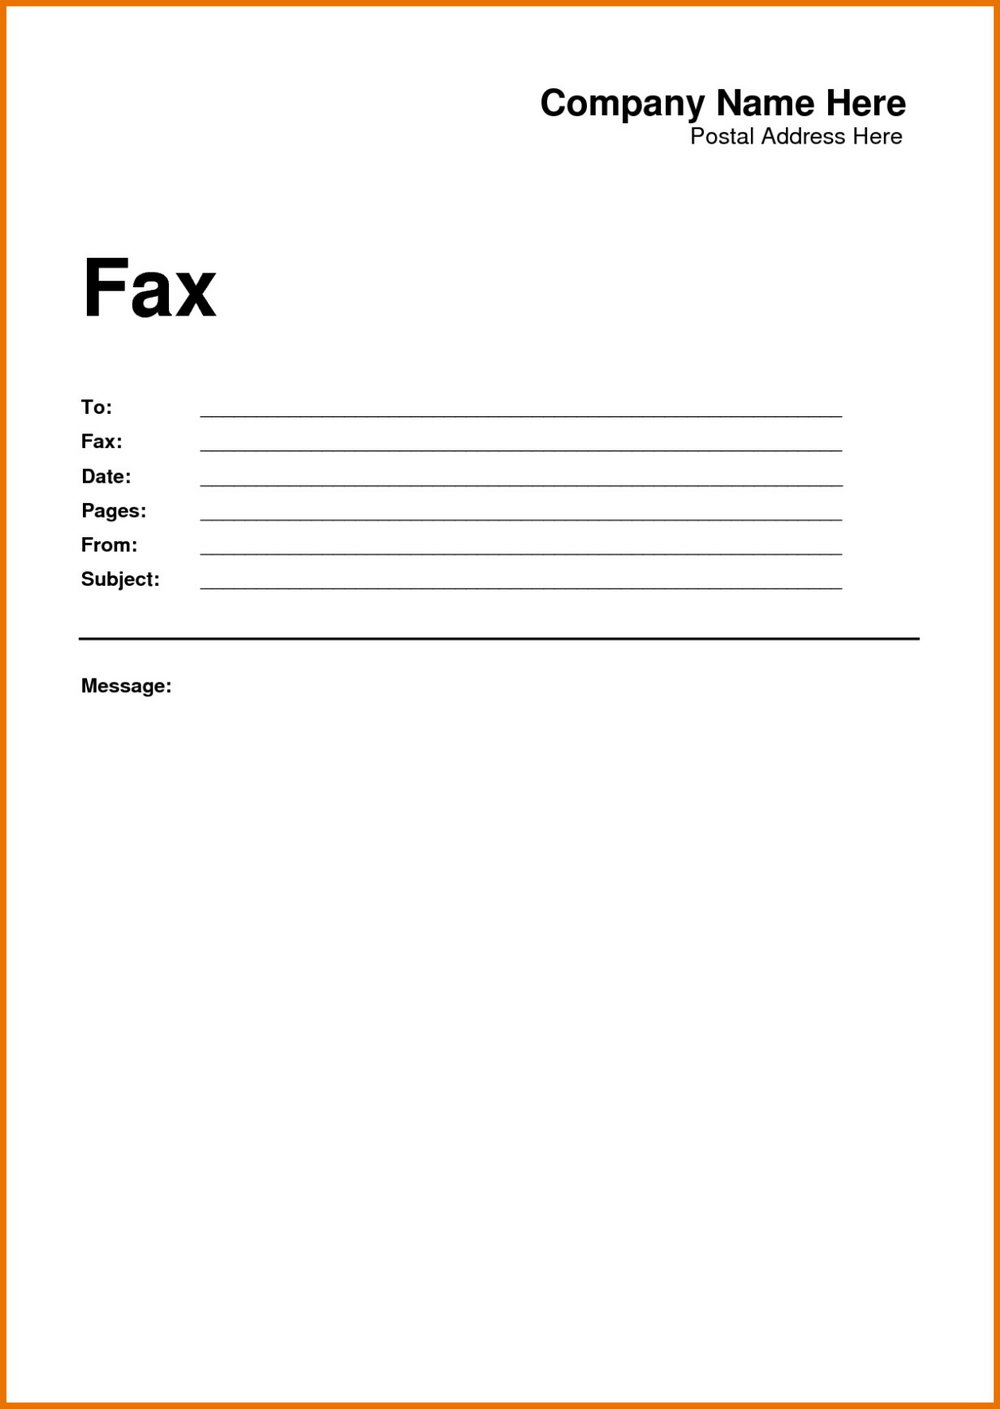 Free Fax Cover Letter Printable